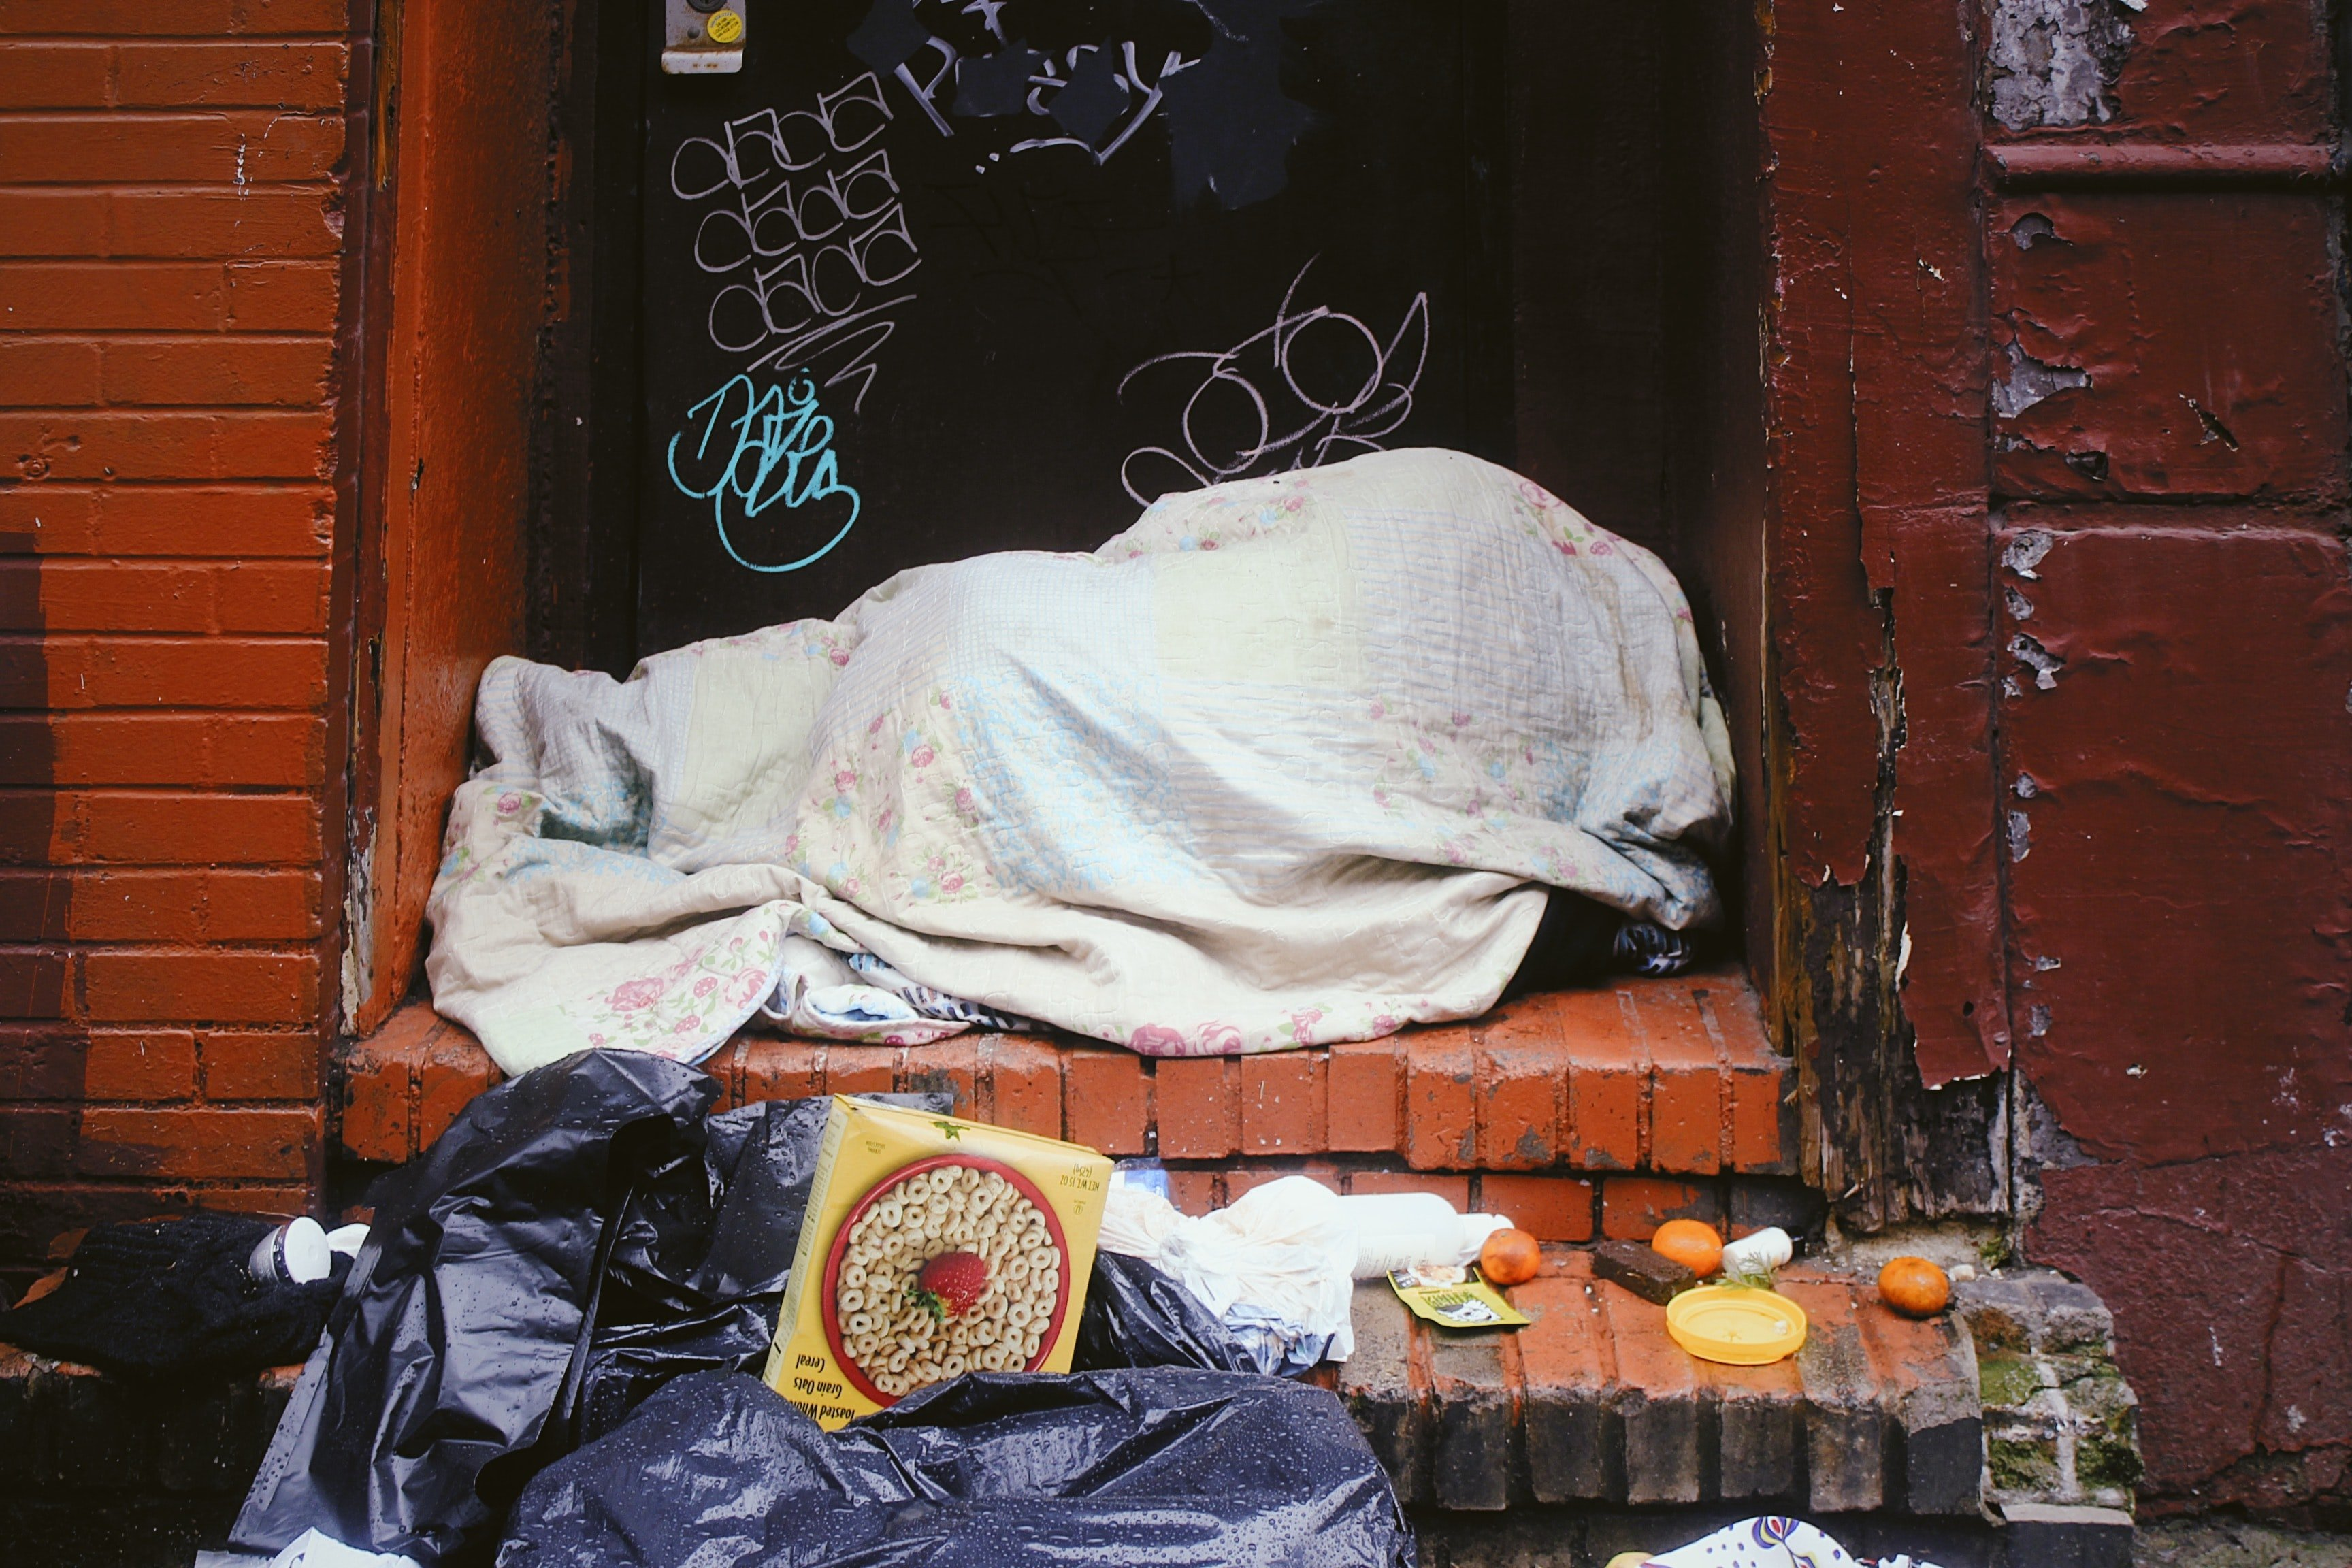 The homeless girl would sleep by a doorstep every night. | Source: Unsplash